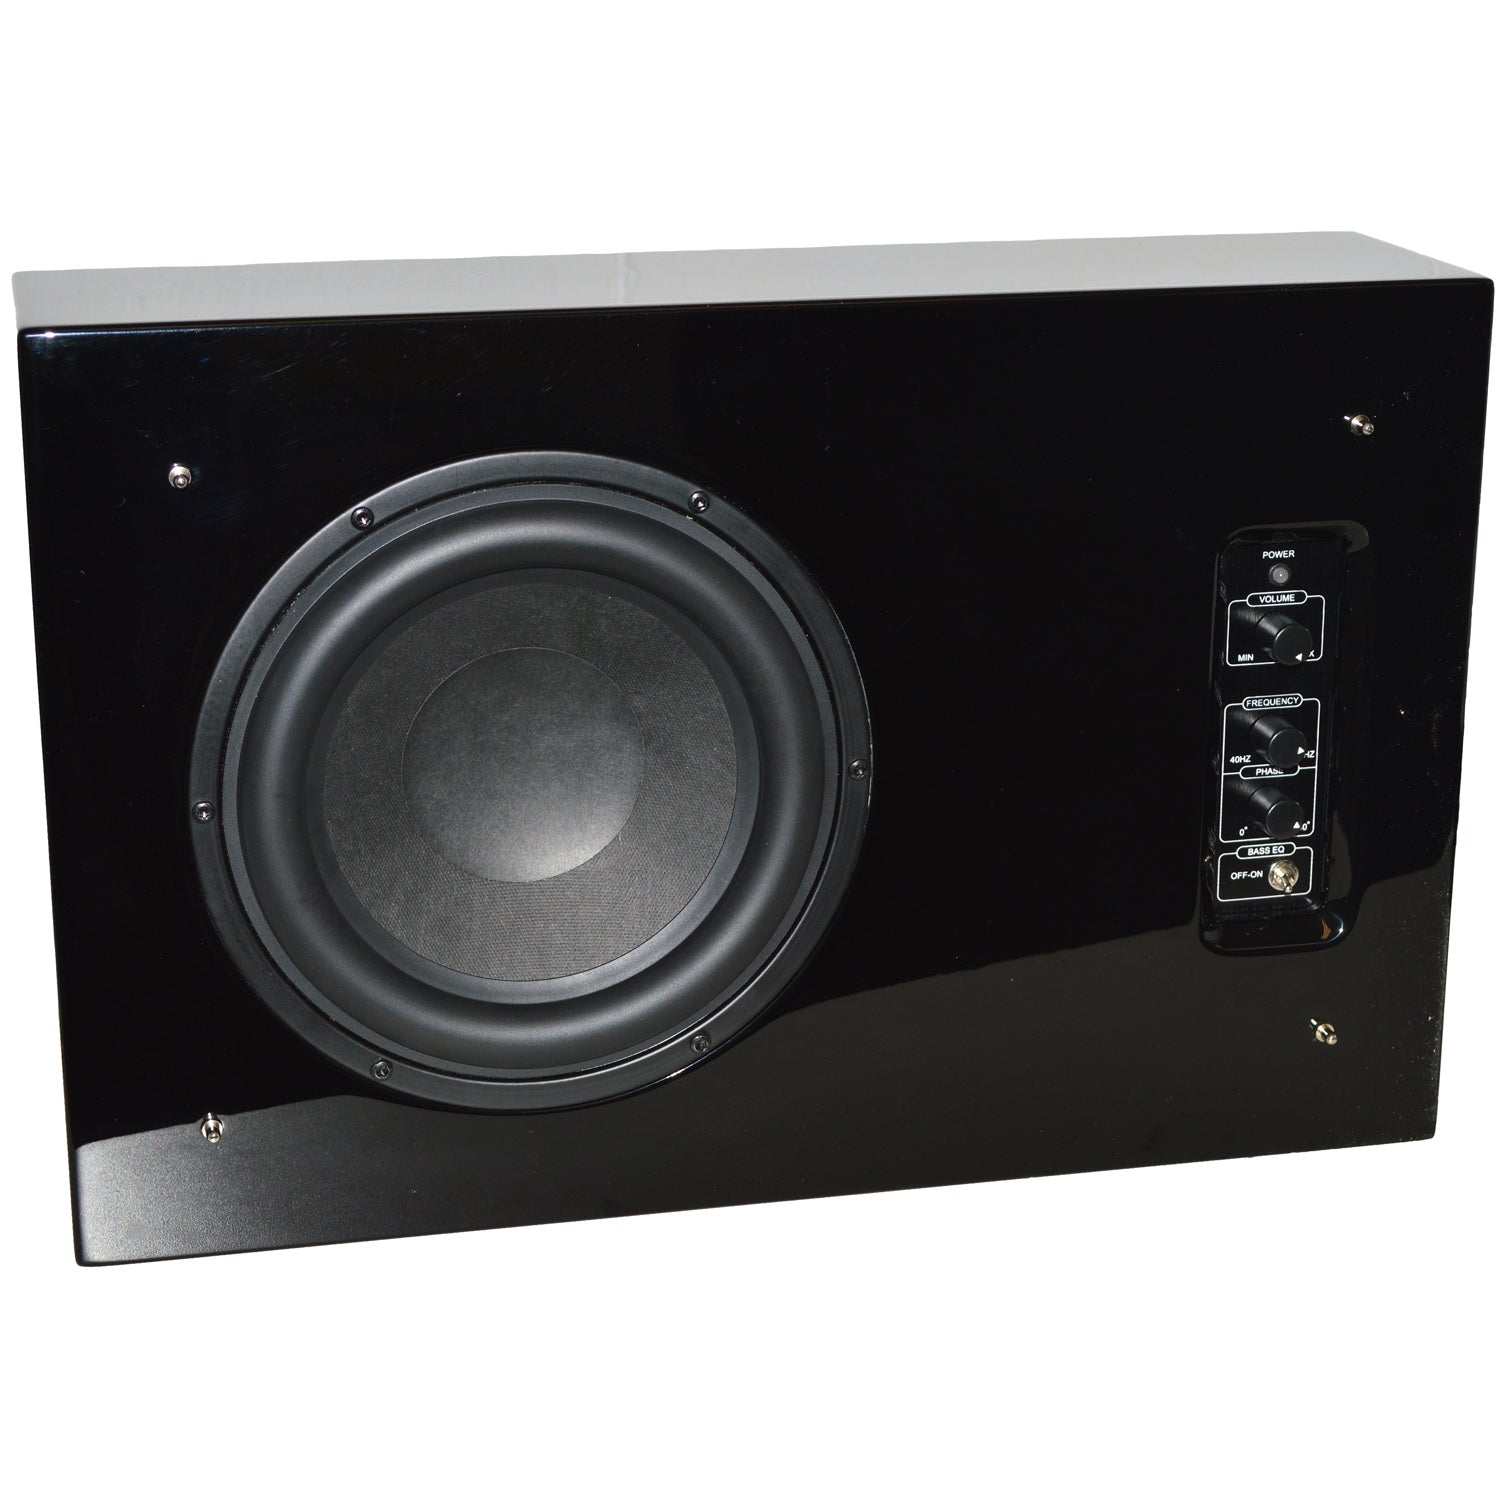 DLS Flatsub Stereo-One - Bluetooth 2.1 system (Piece), DLS, Active Subwoofer - Auratech LLC